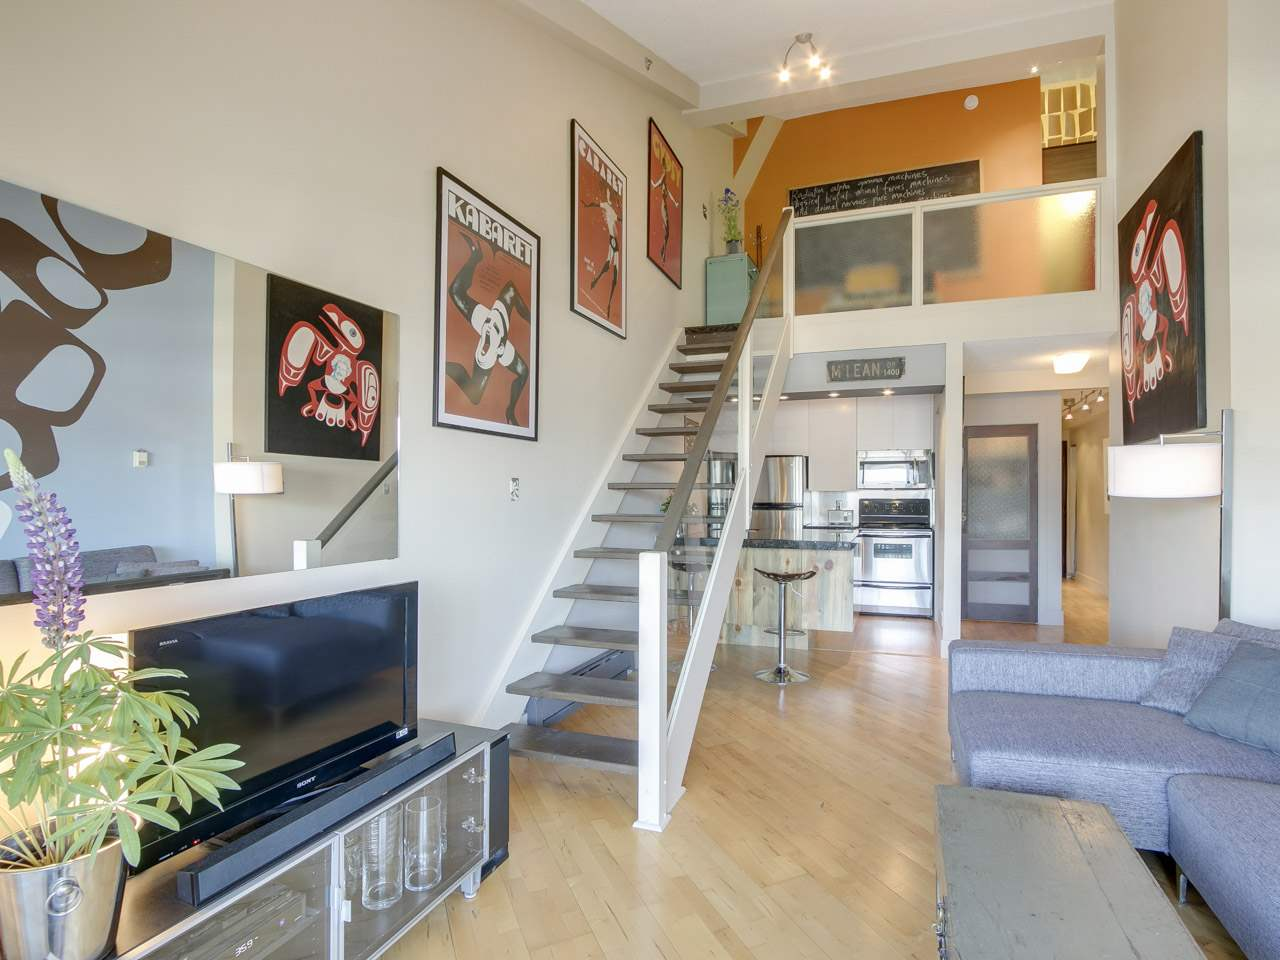 Vancouver Loft dreamiving.ca 408 1549 Kitchener Street